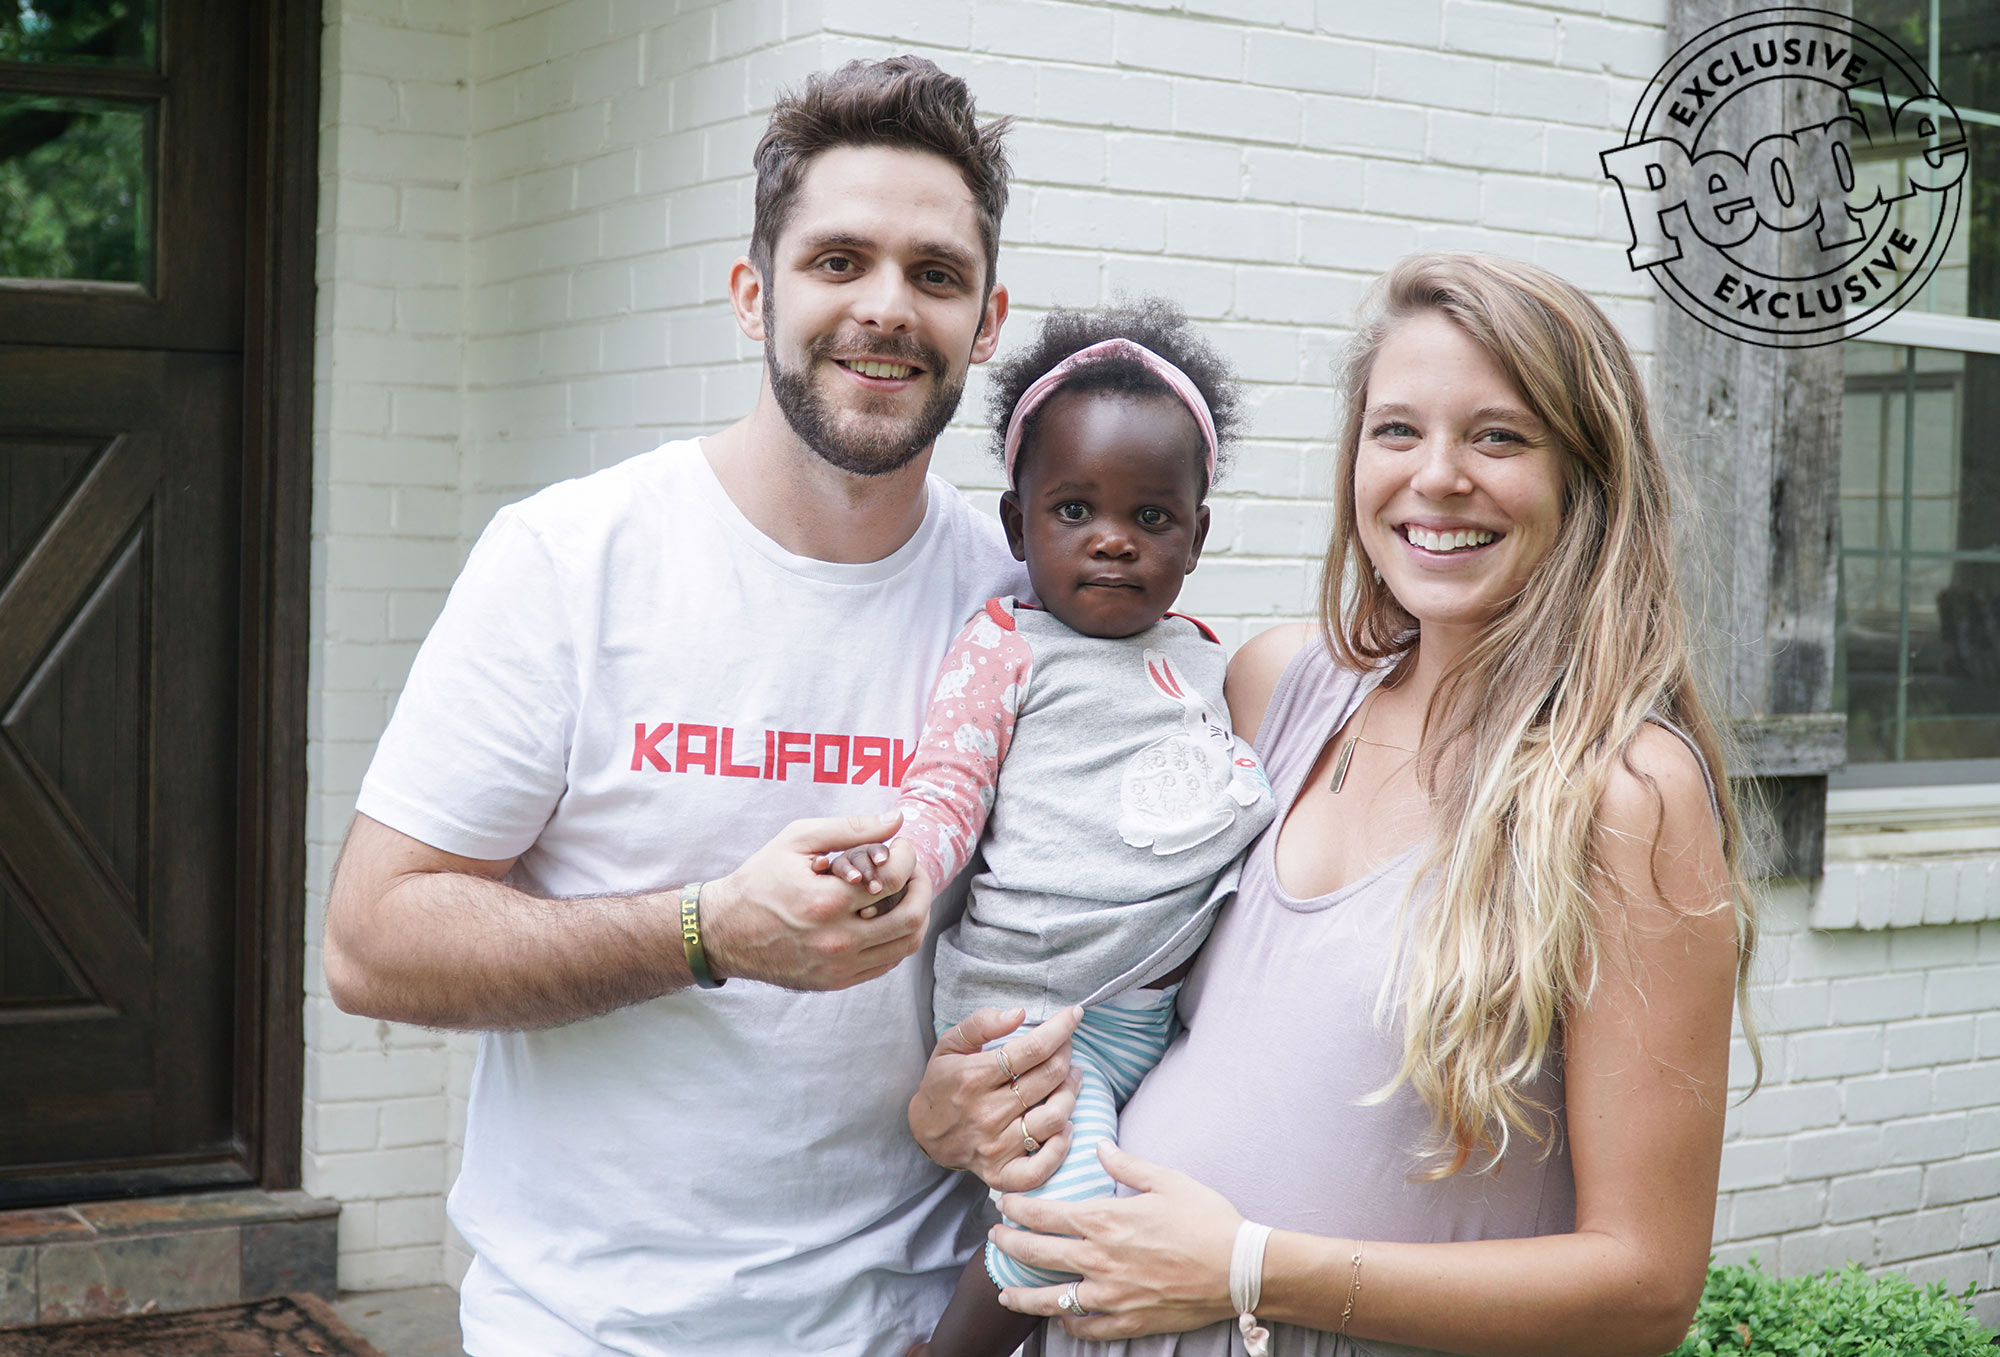 Thomas Rhett and Wife Lauren Welcome Daughter Willa Gray: 'Everyone Is Where They're Supposed to Be'